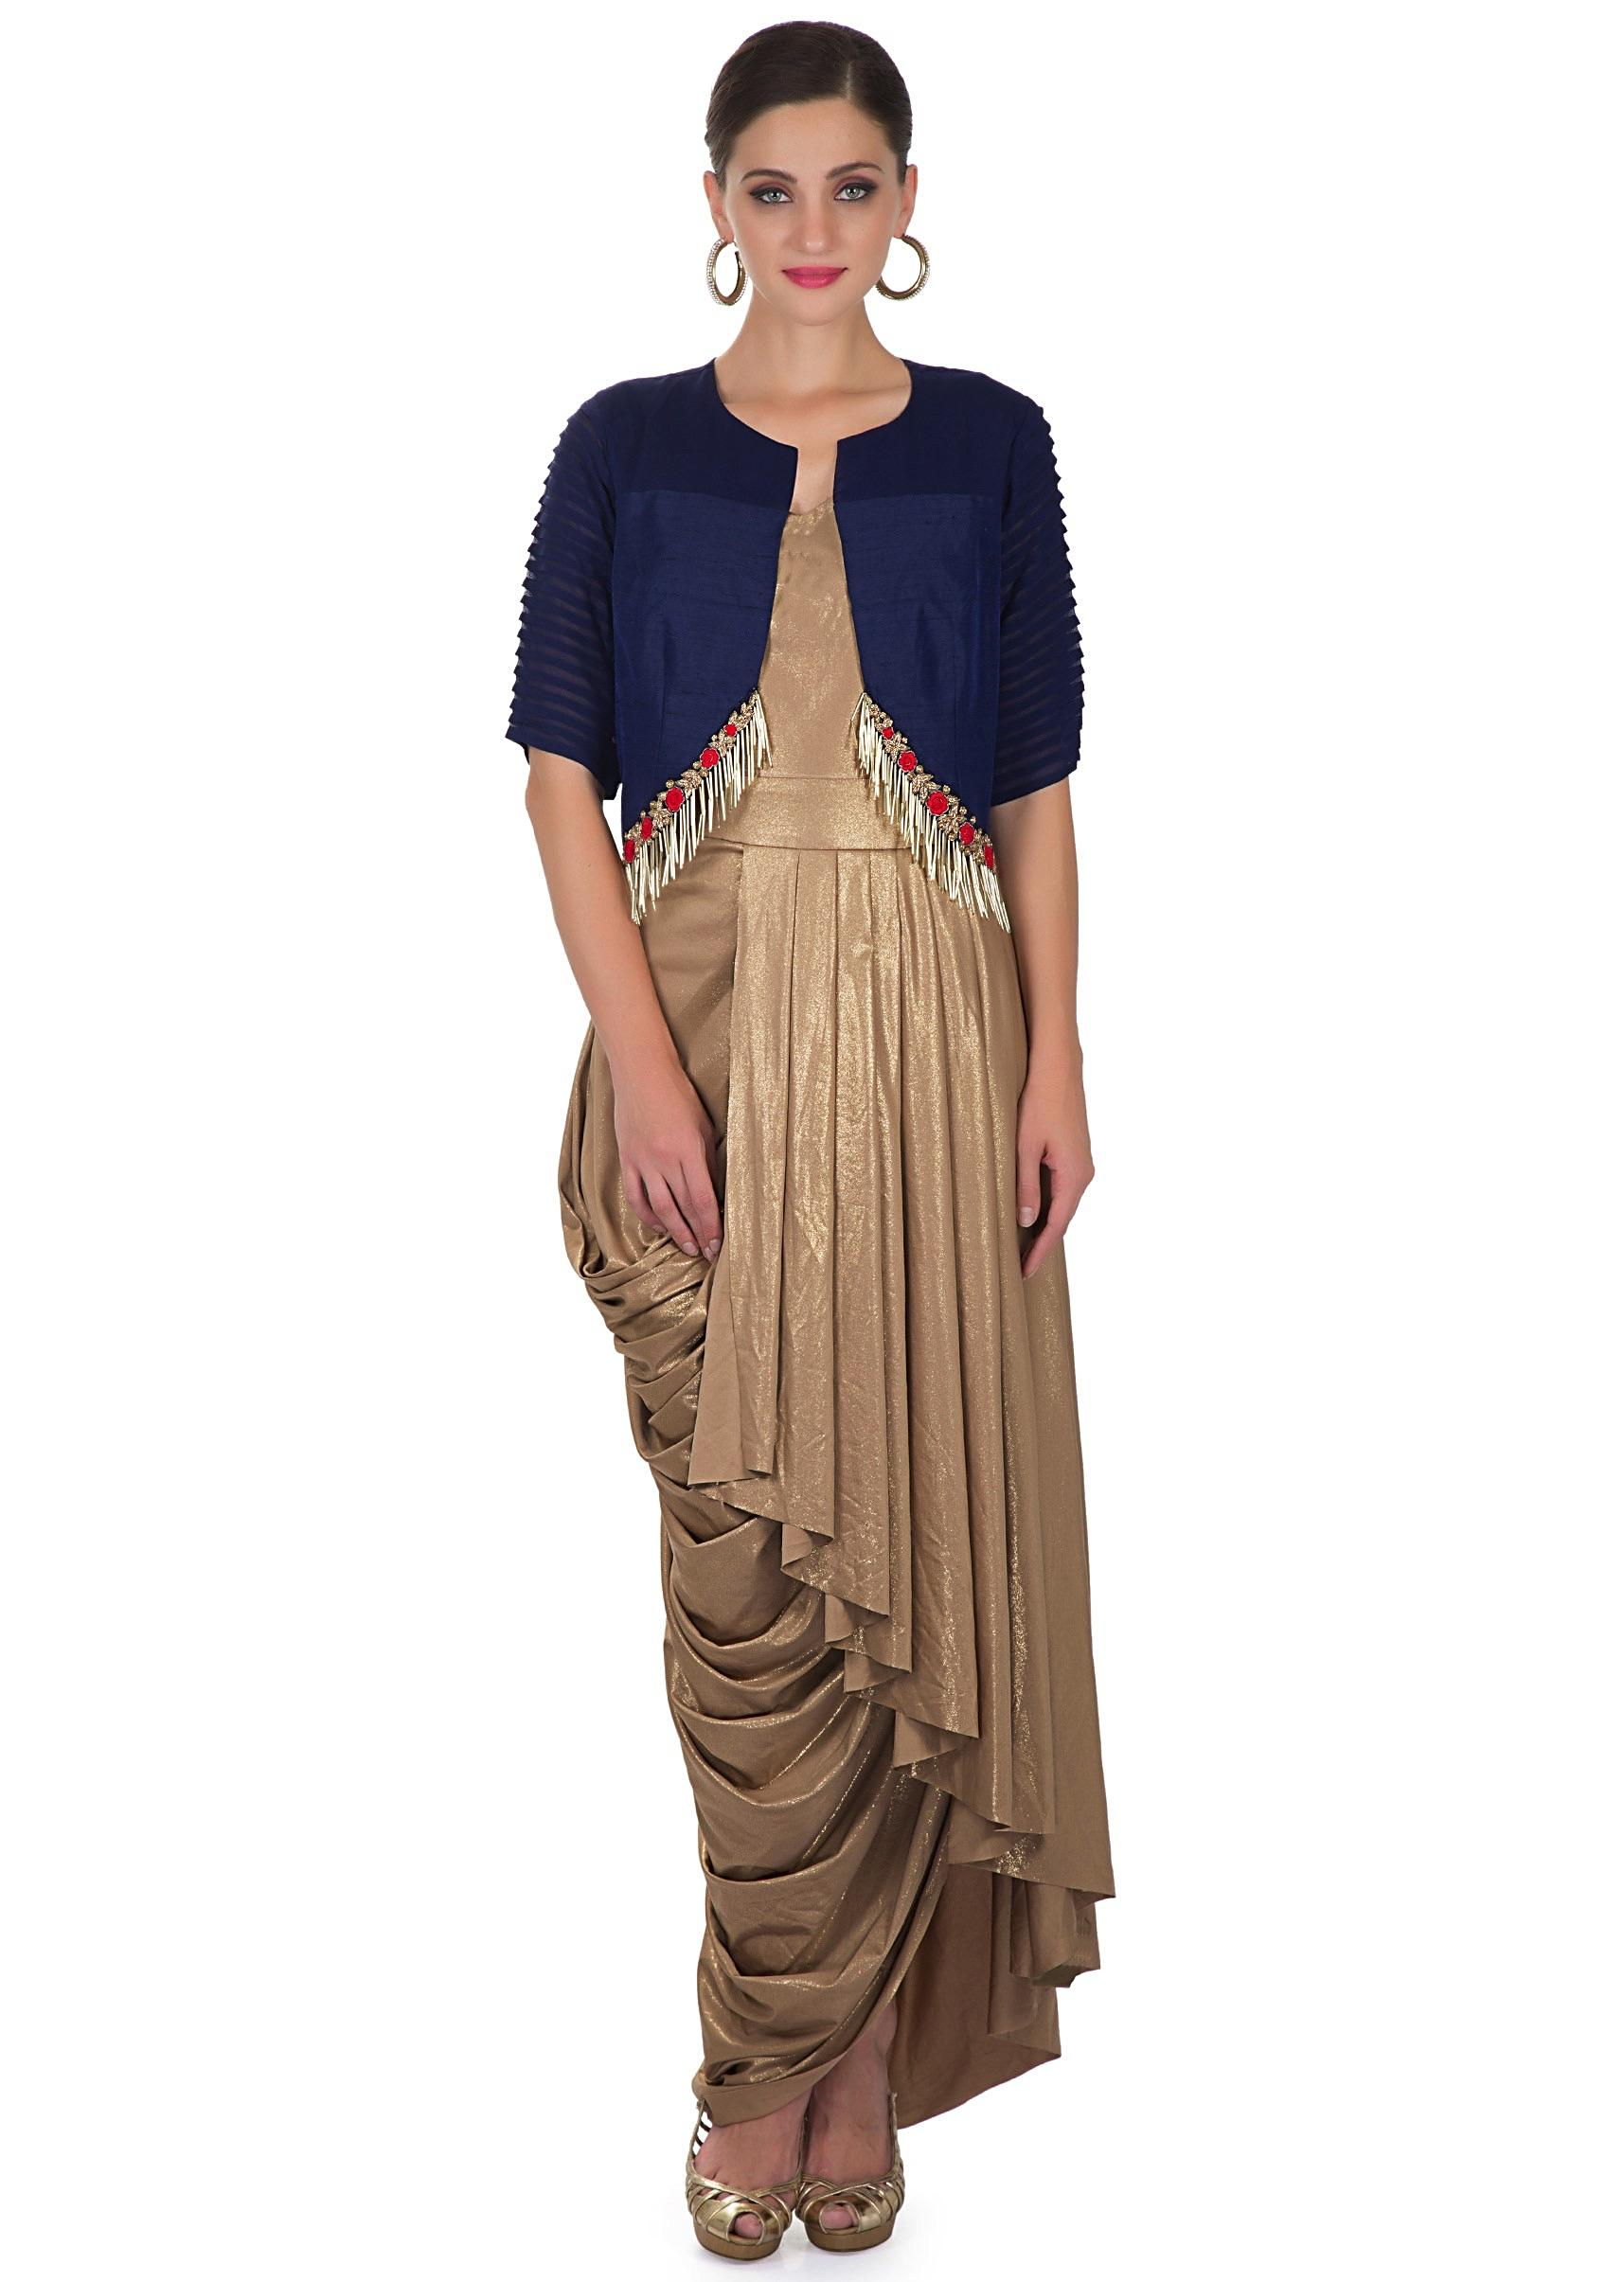 2a3a63e89544 Pleated Gold Dress and Navy Blue Silk Jacket with Floral Motifs and Tassels  only on Kalki